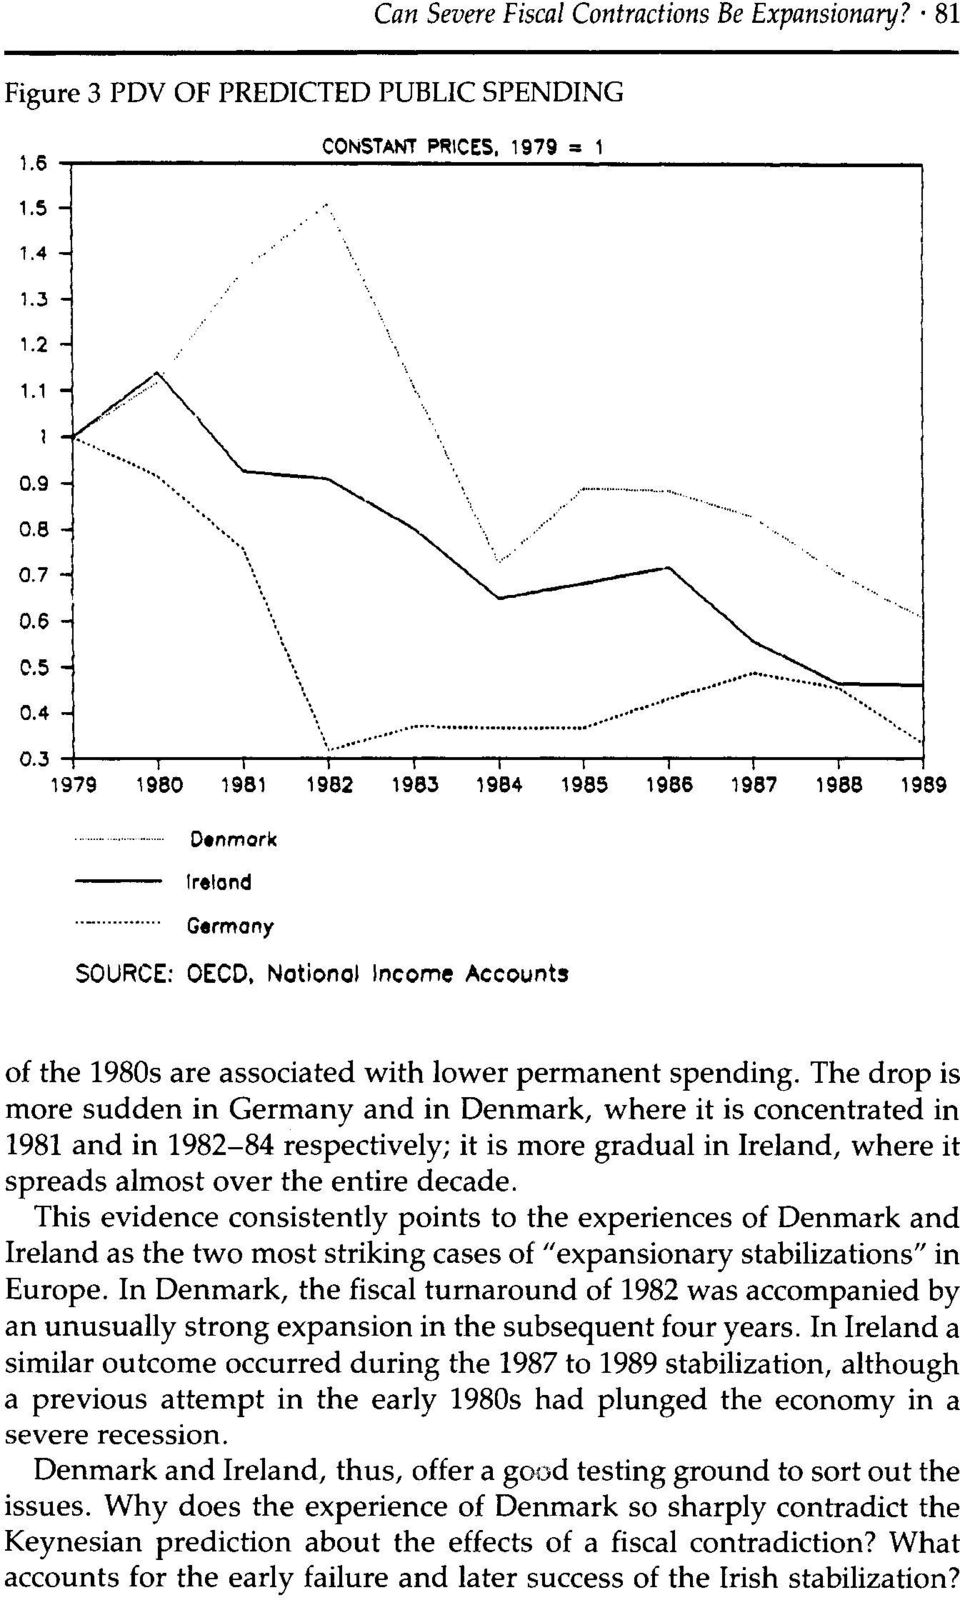 The drop is more sudden in Germany and in Denmark, where it is concentrated in 1981 and in 1982-84 respectively; it is rnore gradual in Ireland, where it spreads almost over the entire decade.